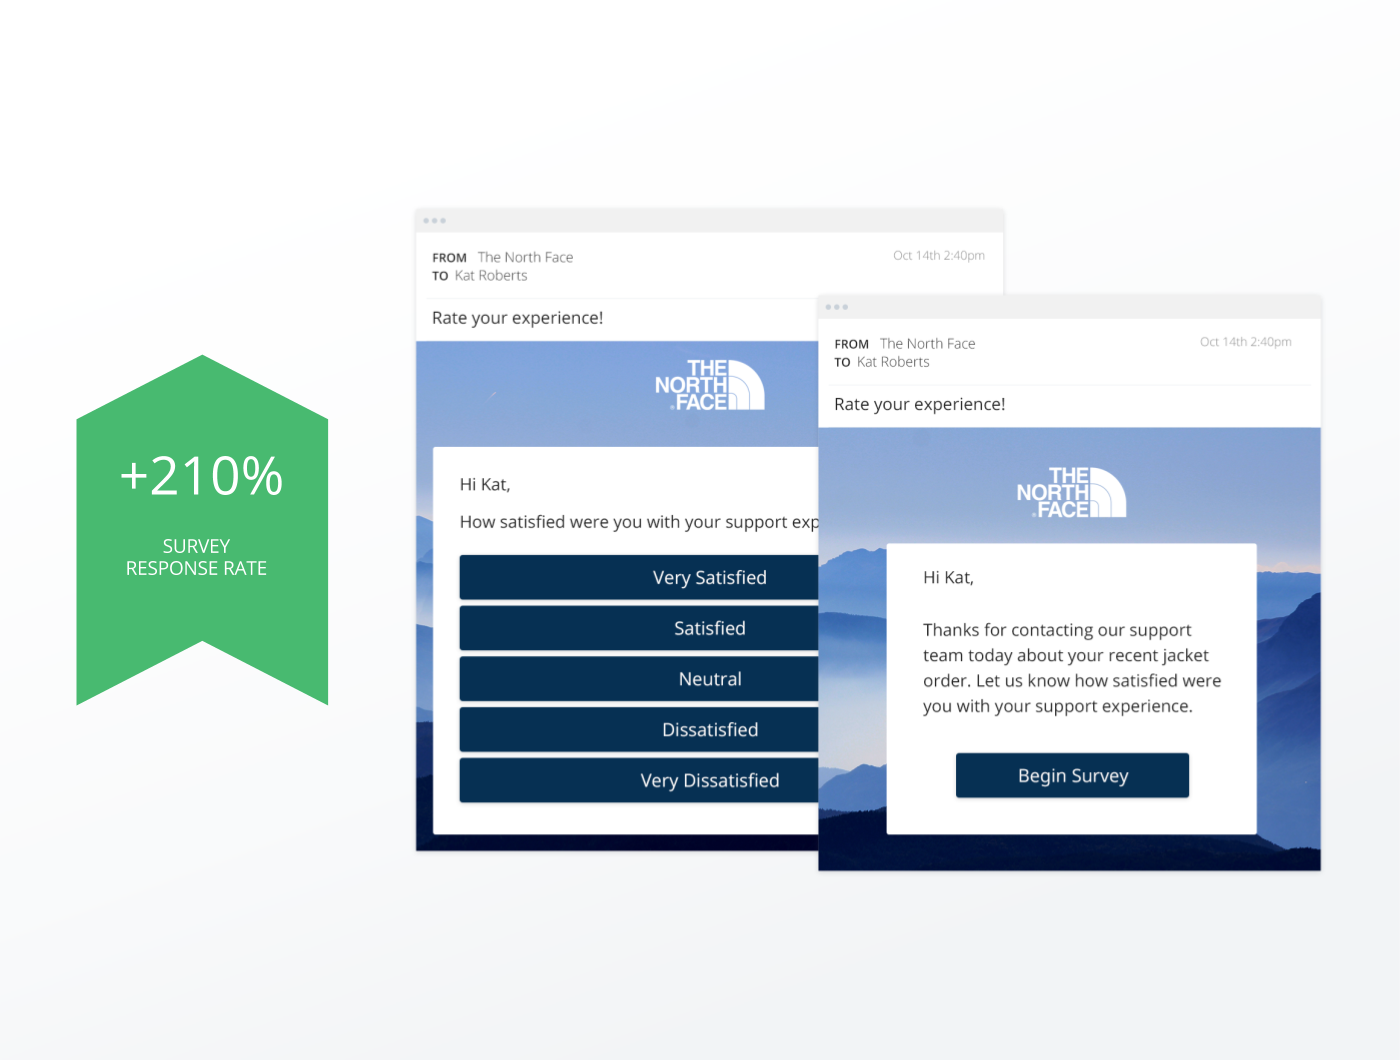 Supercharge survey engagement by 240% with one-touch email surveys